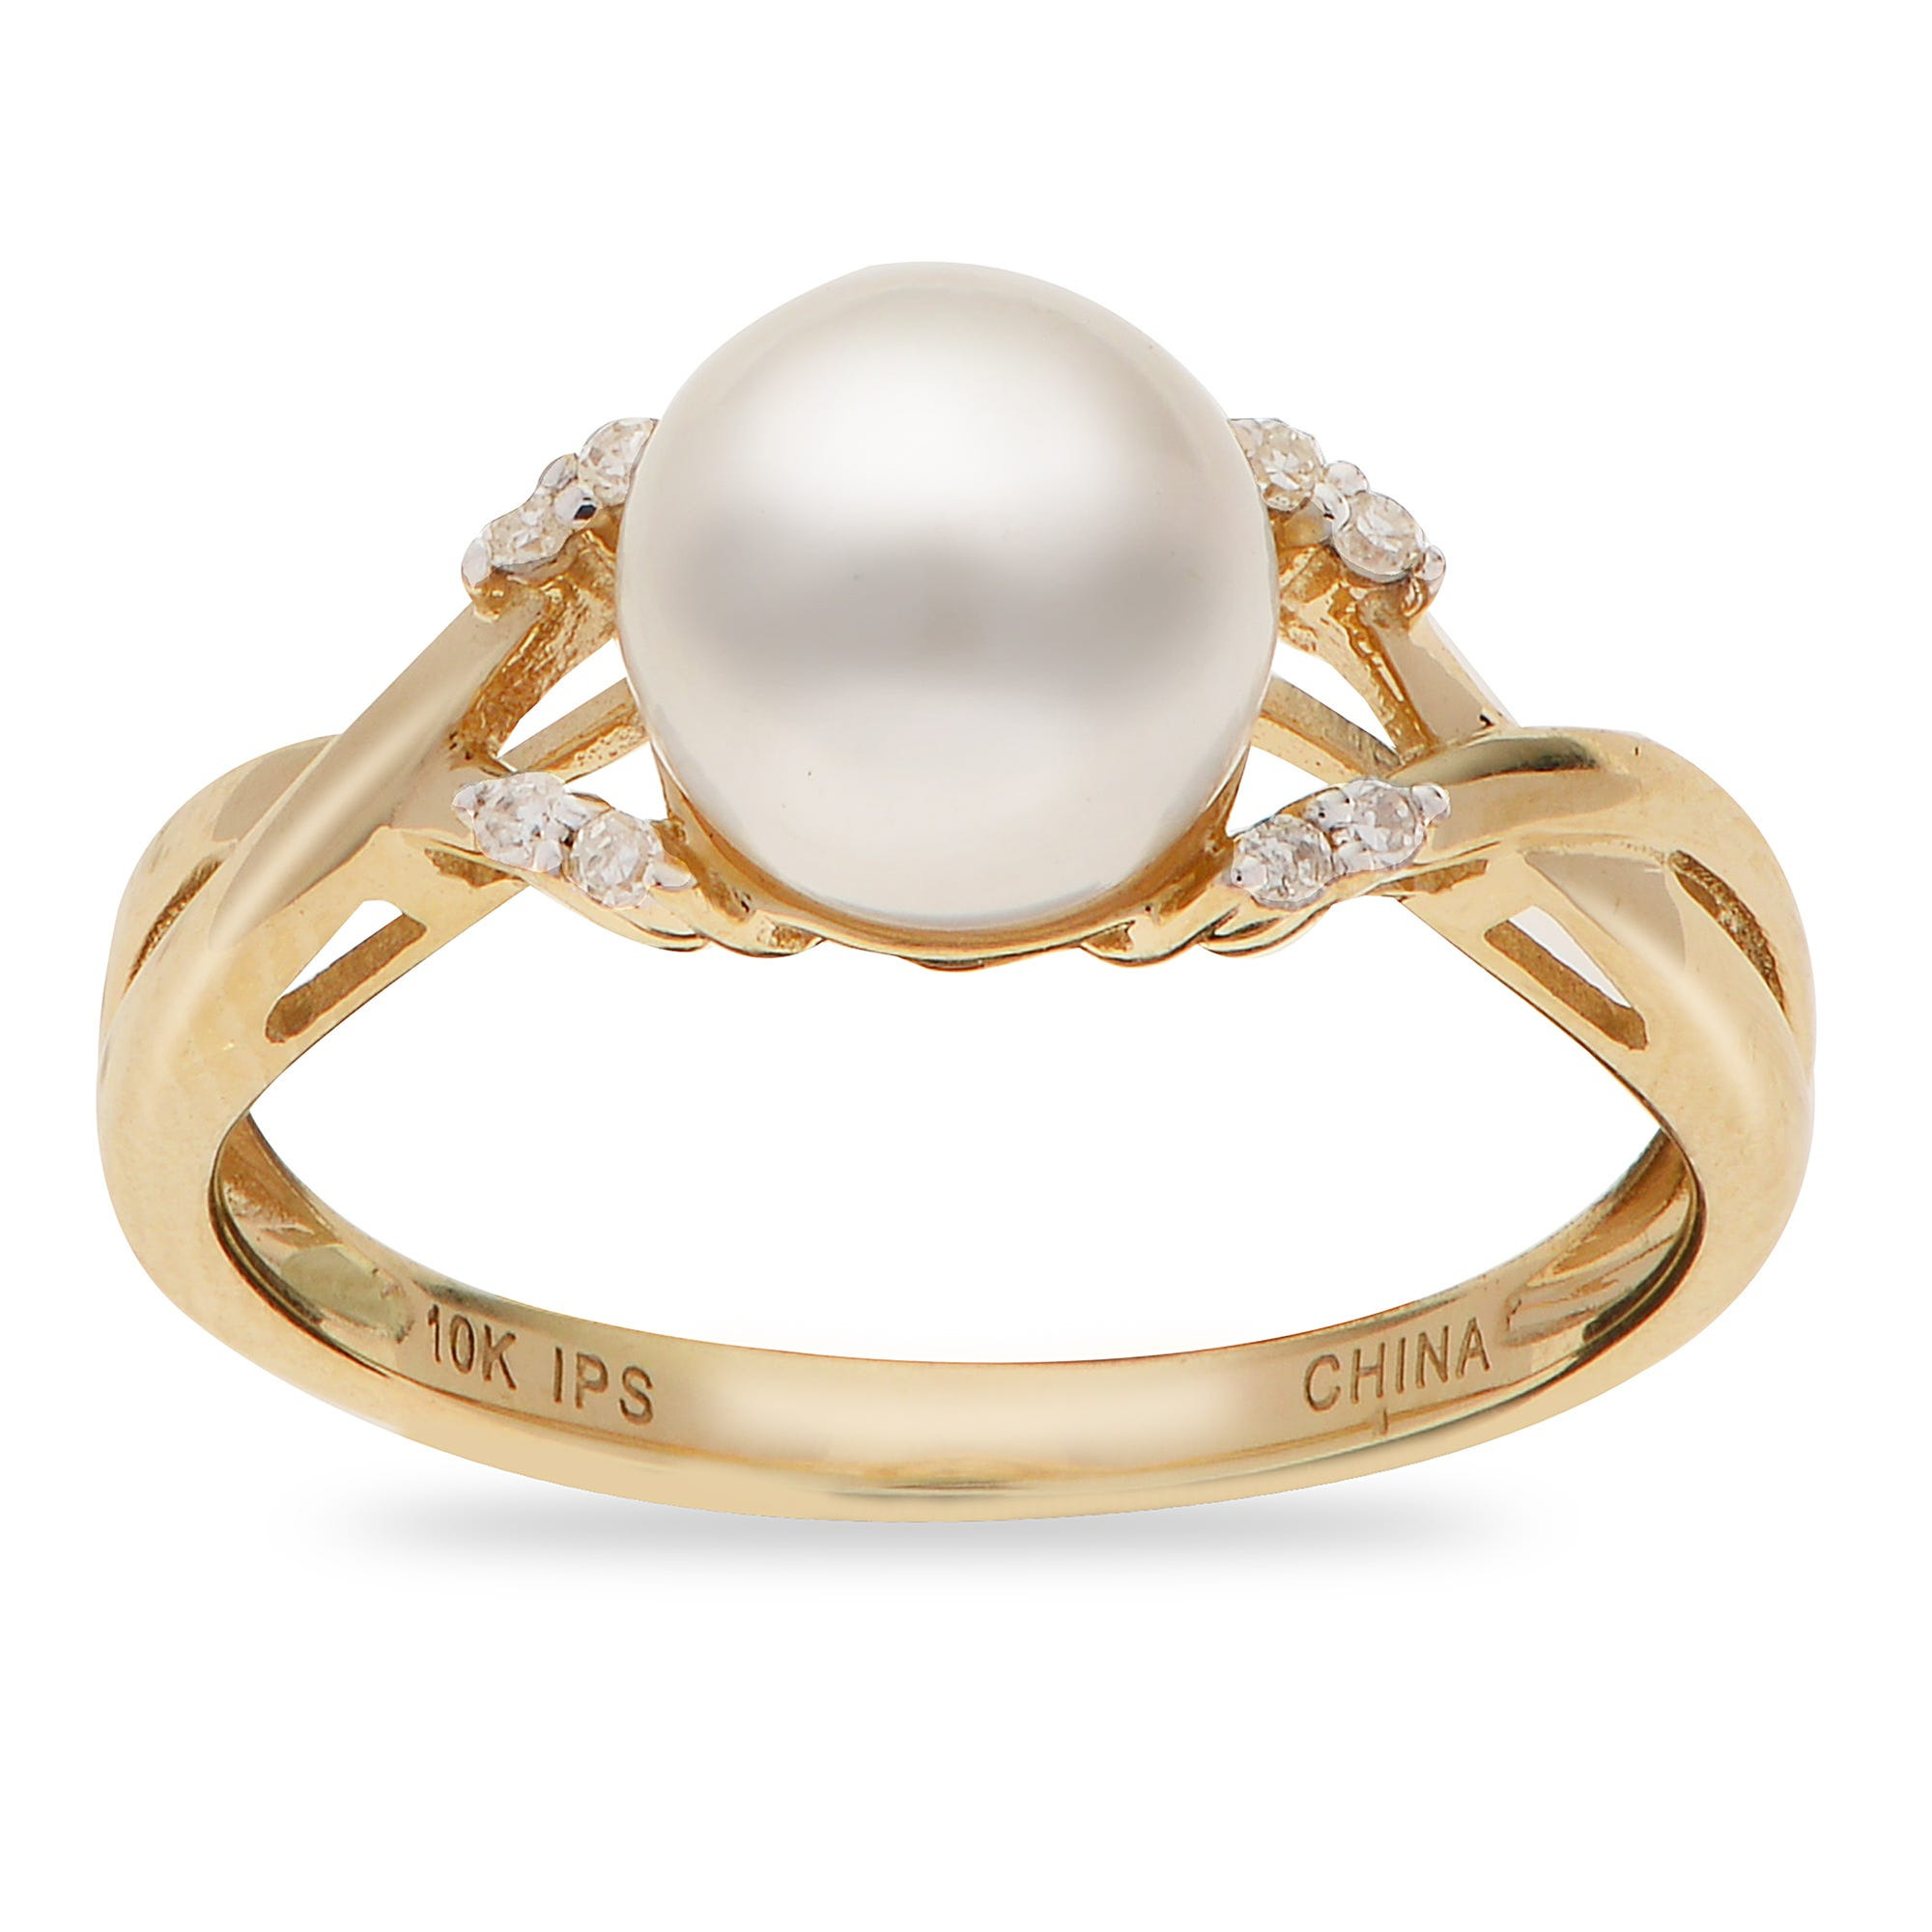 Round Imperial Pearl 7.5-8mm Pearl Ring in 10k Yellow Gold